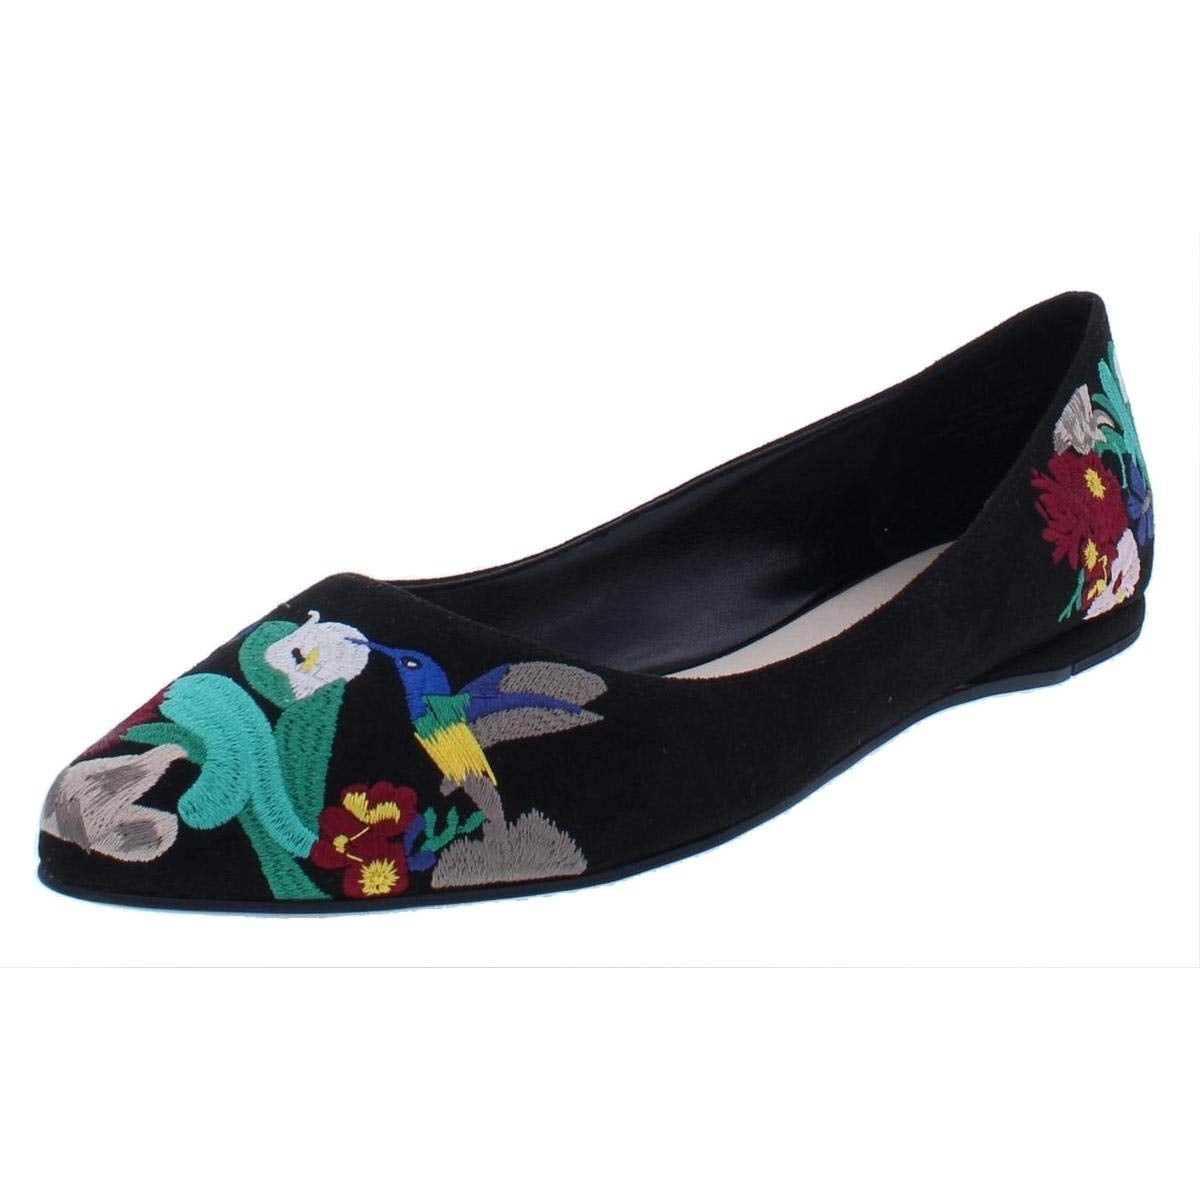 d593797a53d7 Buy Nine West Women s Flats Online at Overstock